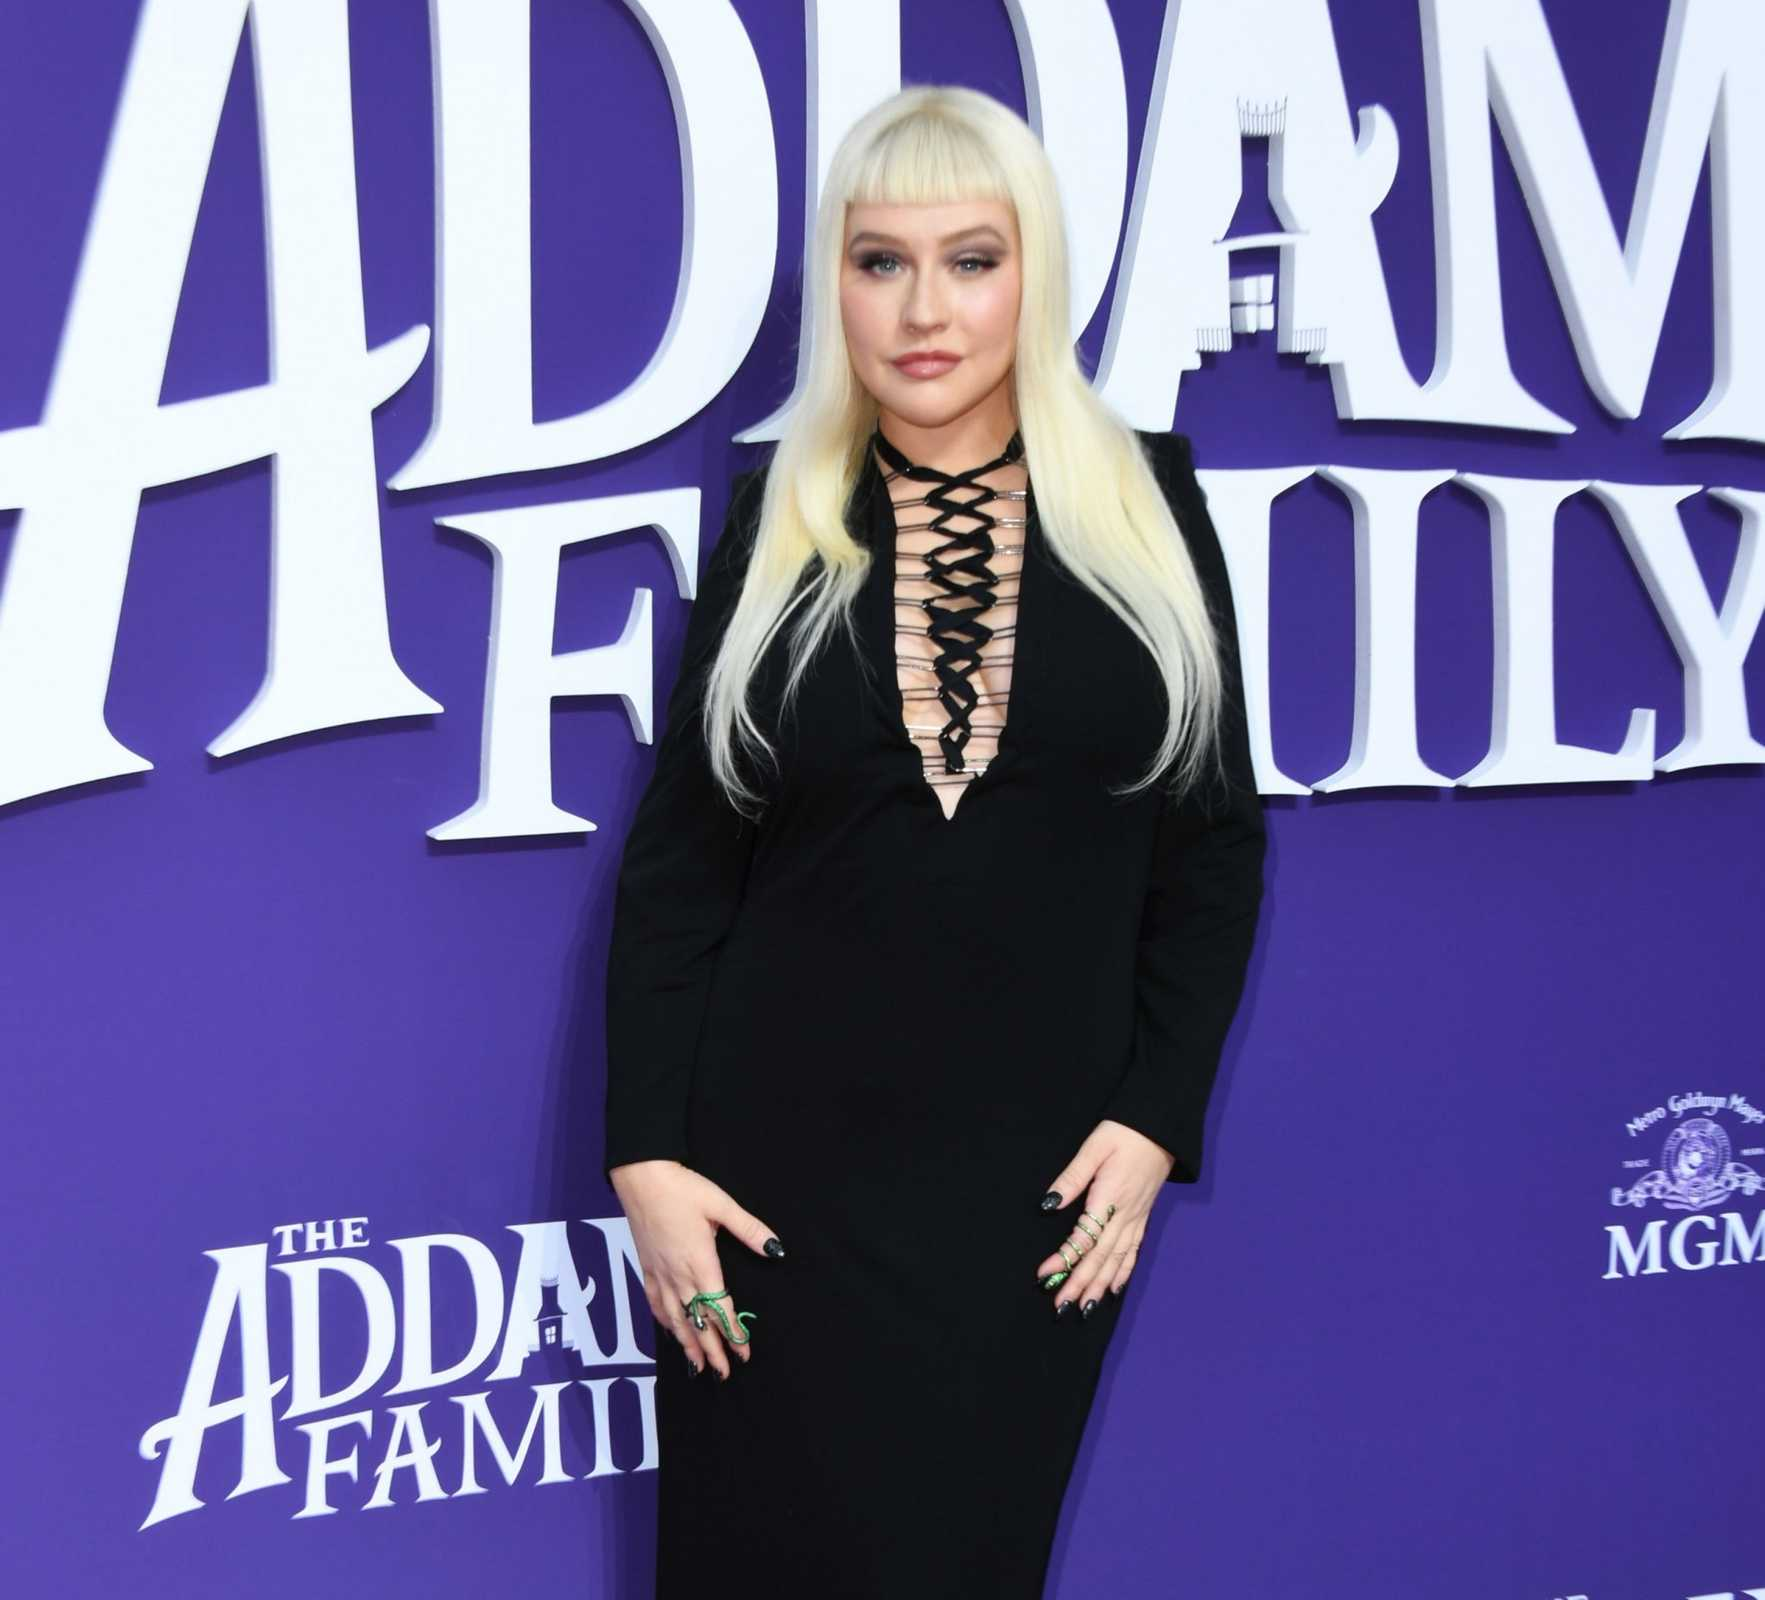 Christina_Aguilera_-_The_Addams_Family_Premiere__in_Los_Angeles_-_October_062C_2019-37.jpg